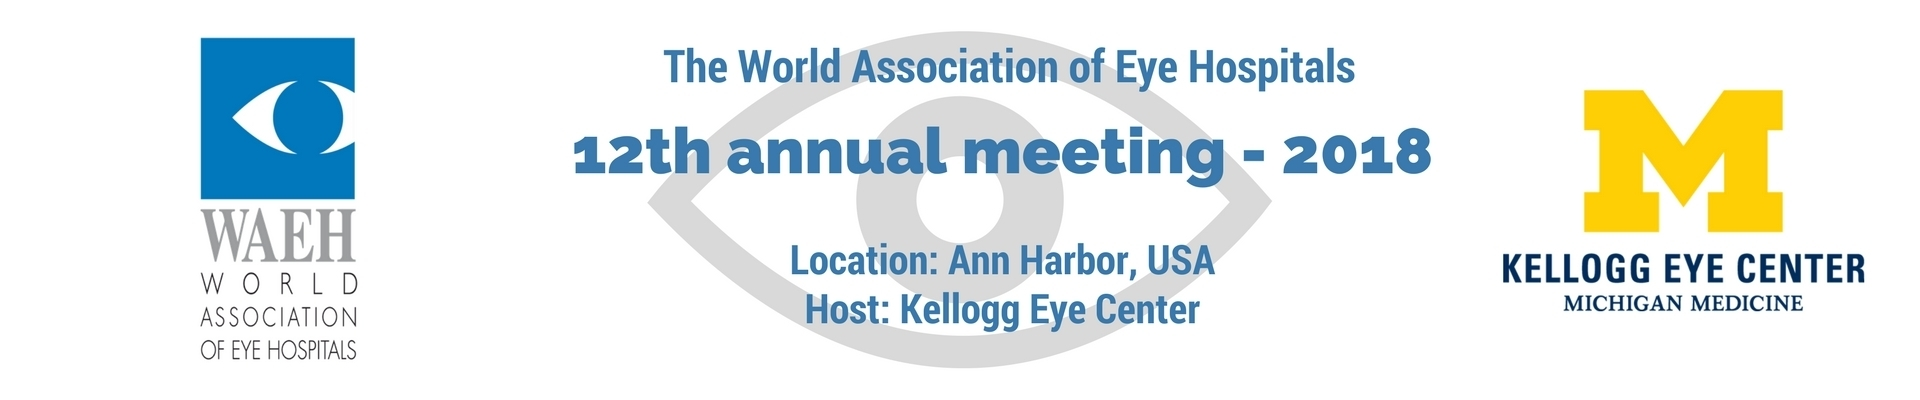 12th Annual Meeting of The World Association of Eye Hospitals